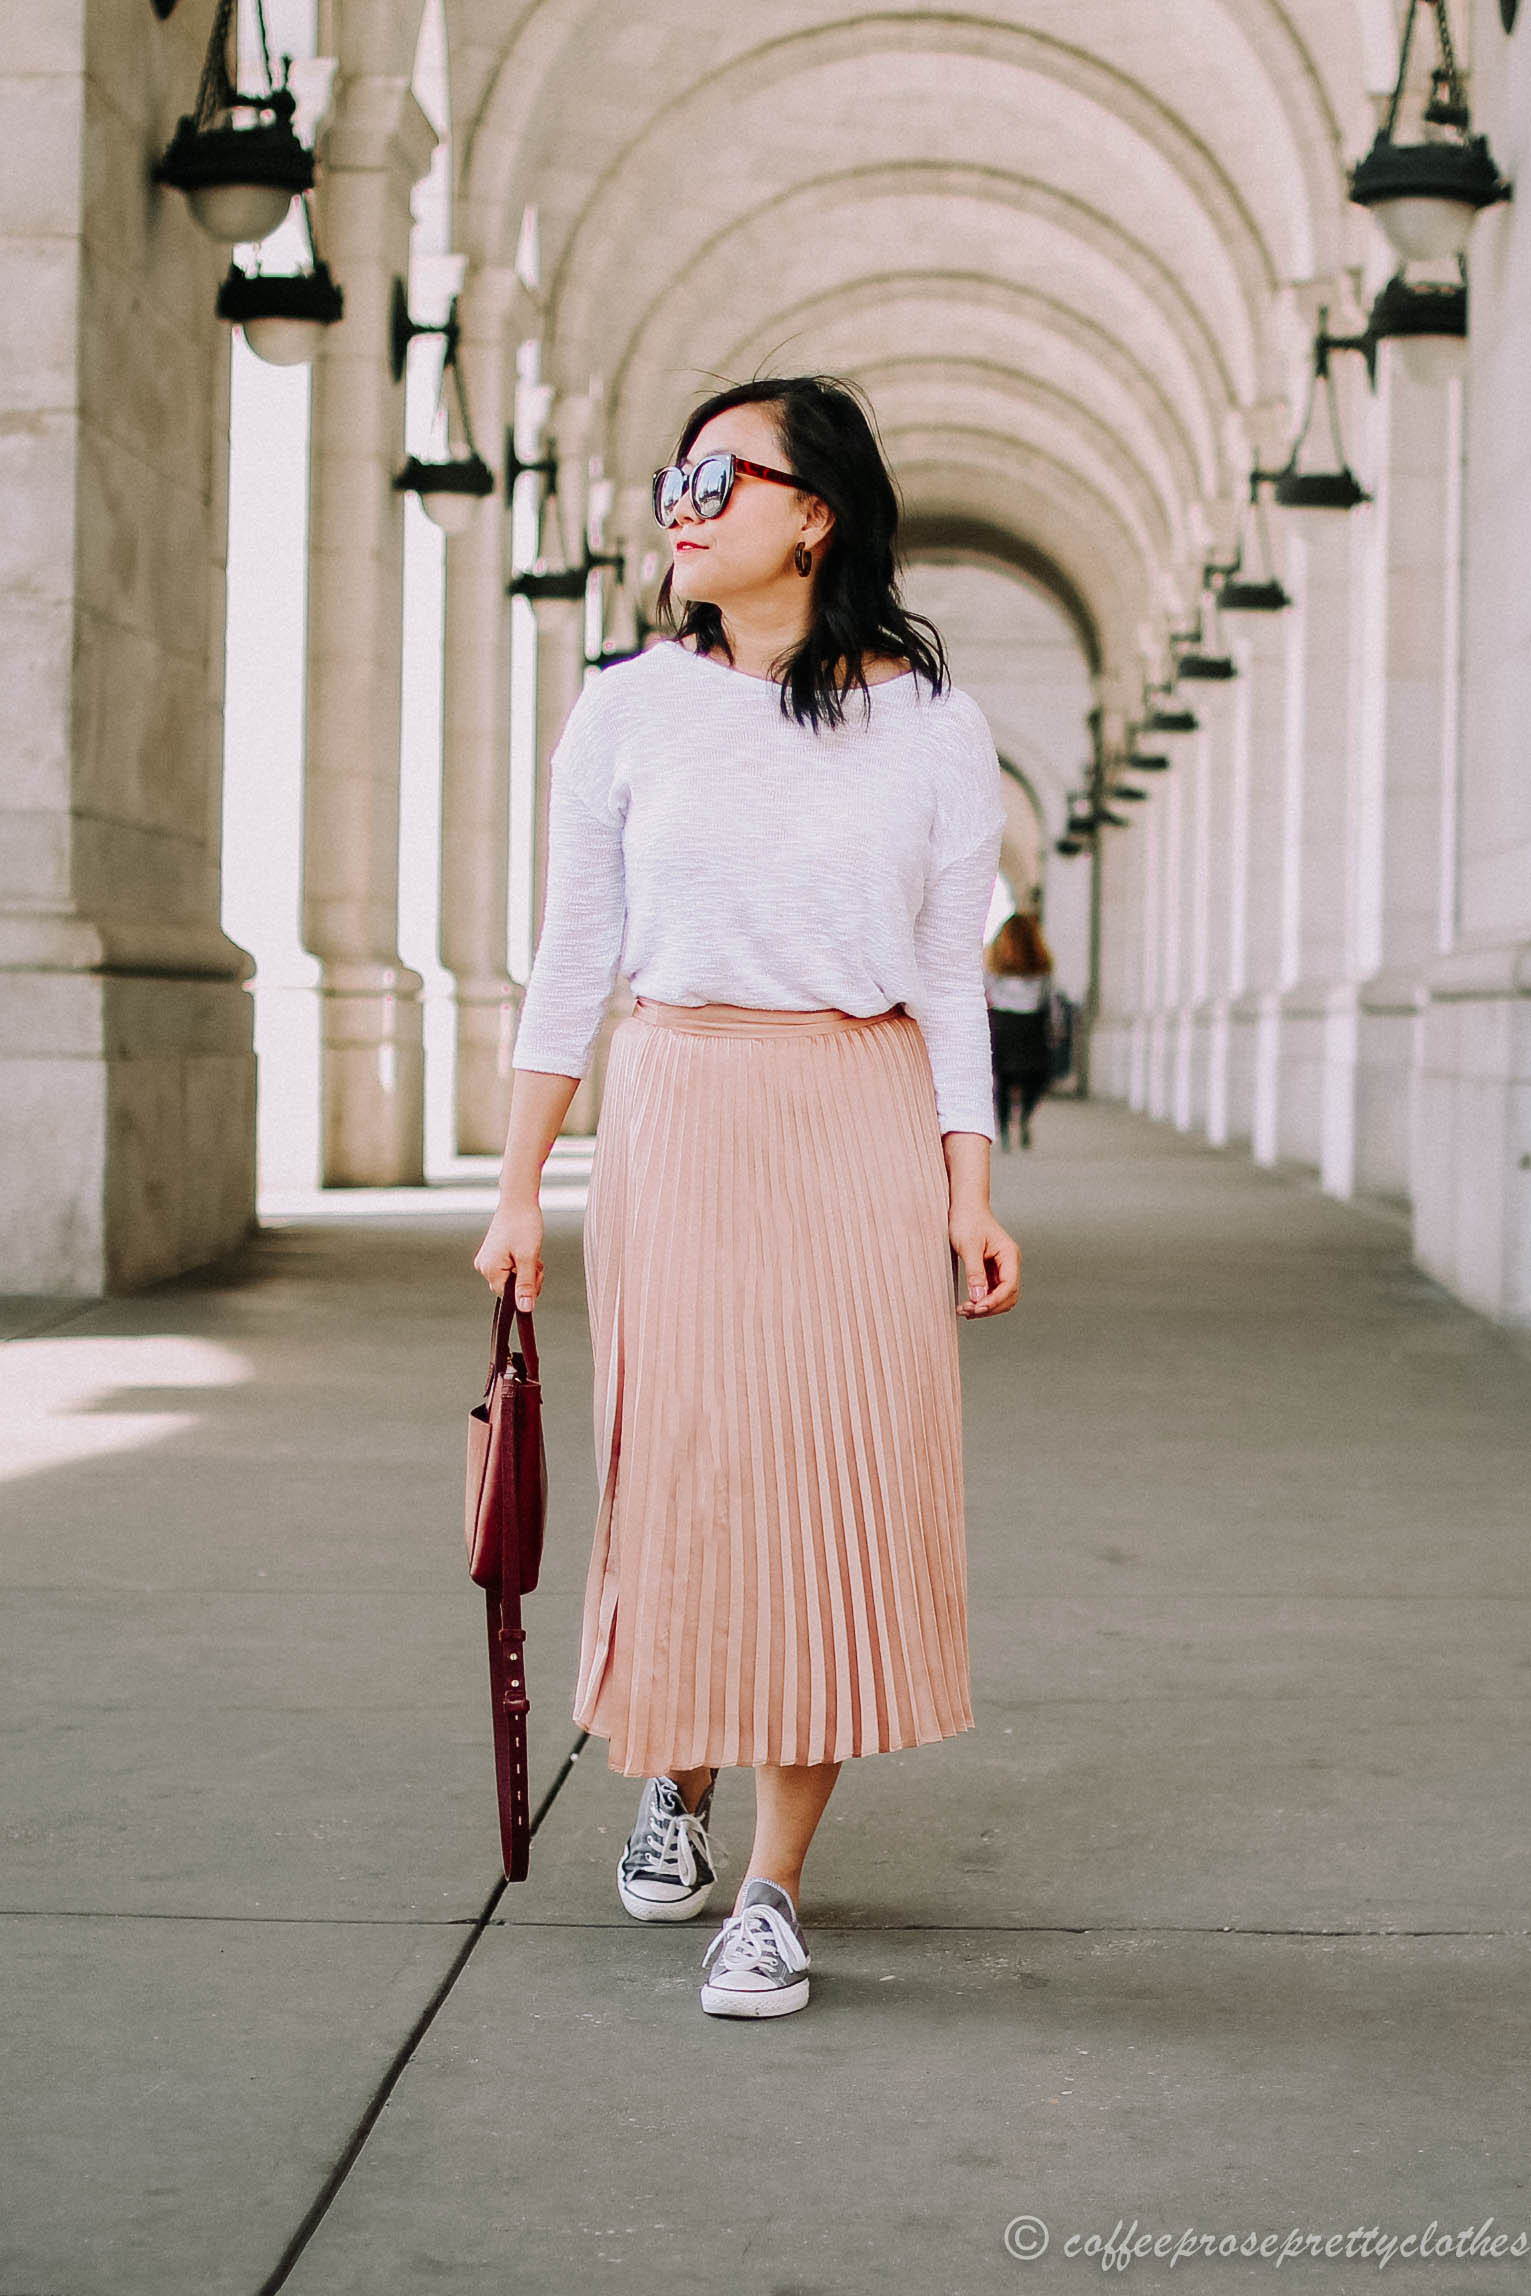 Sézane Dino Skirt, Converse sneakers, Madewell Small Transport Tote